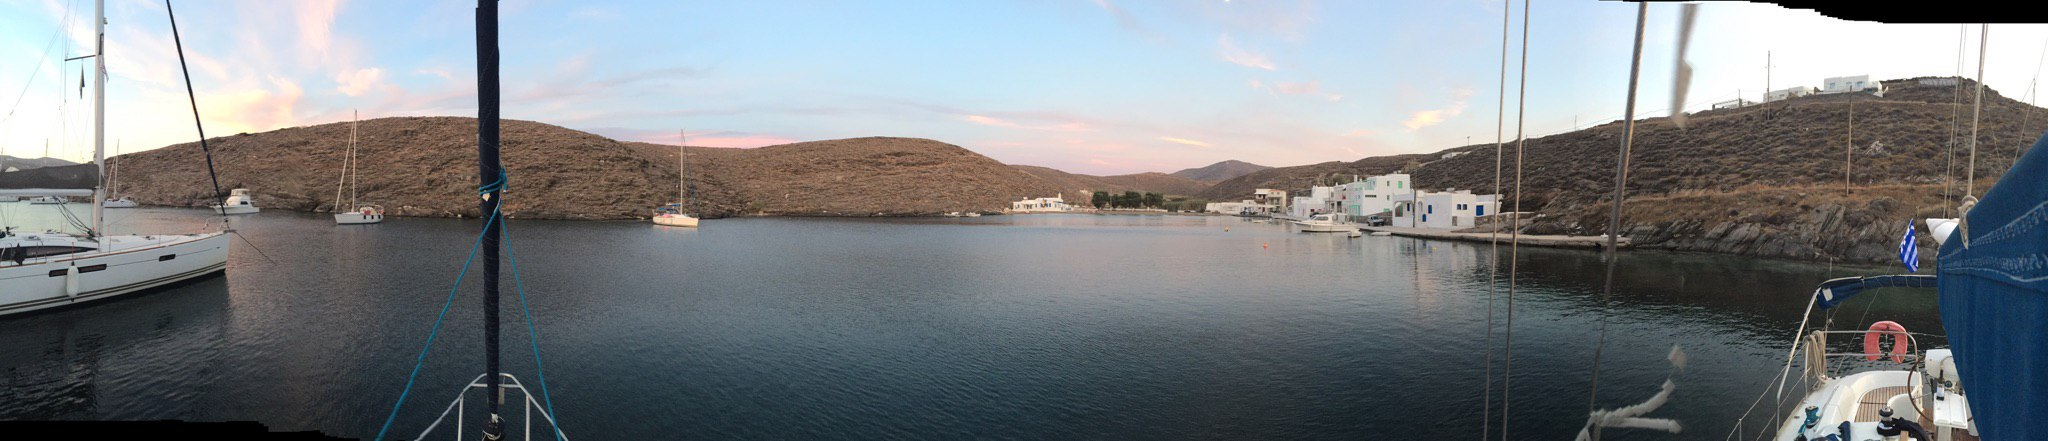 Kythnos island - Countless sailing destinations